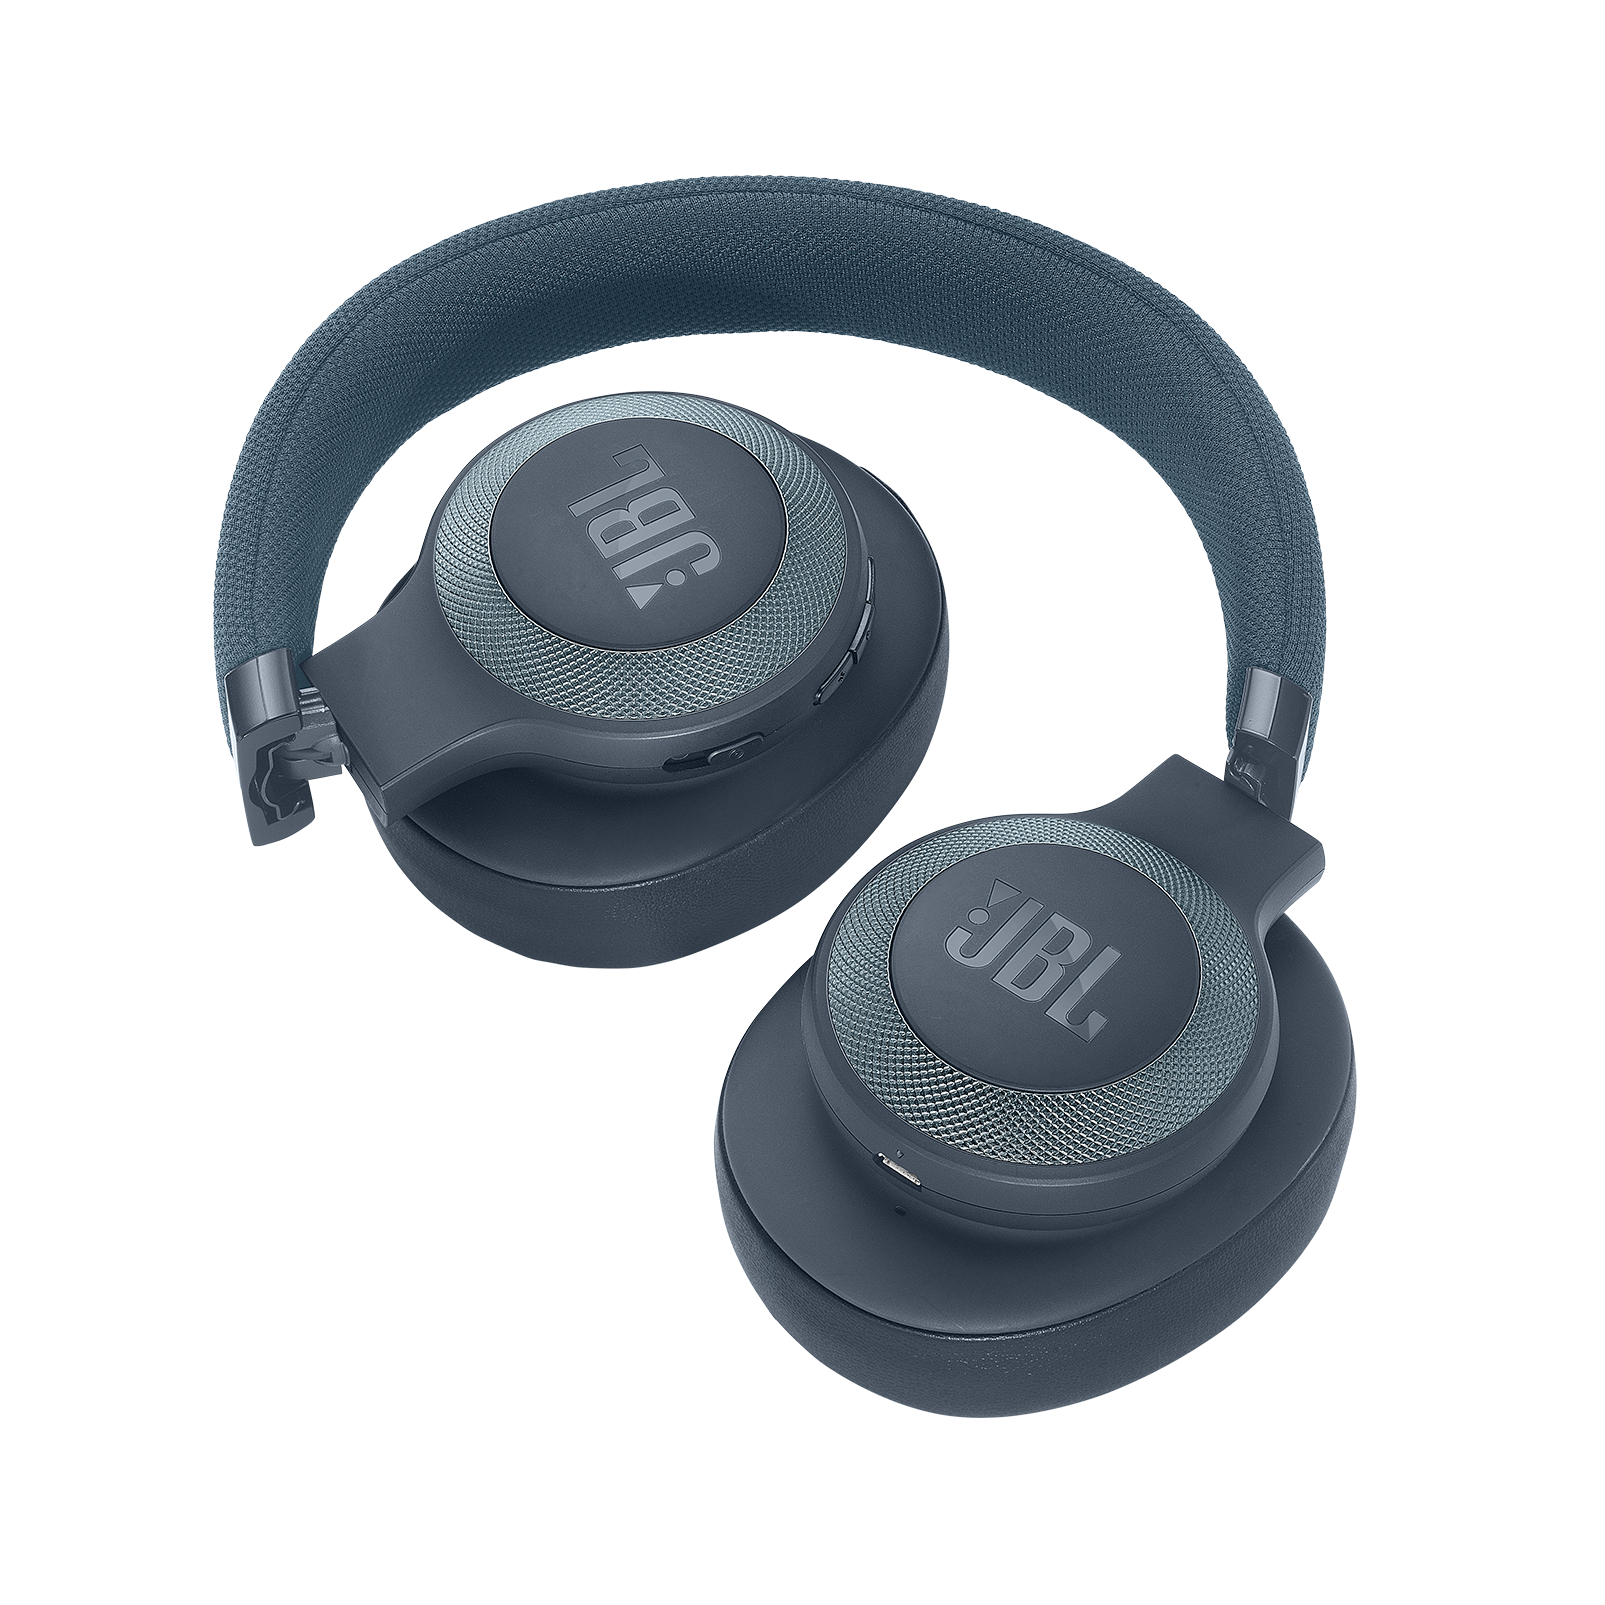 JBL E65BTNC - Blue - Wireless over-ear noise-cancelling headphones - Detailshot 2